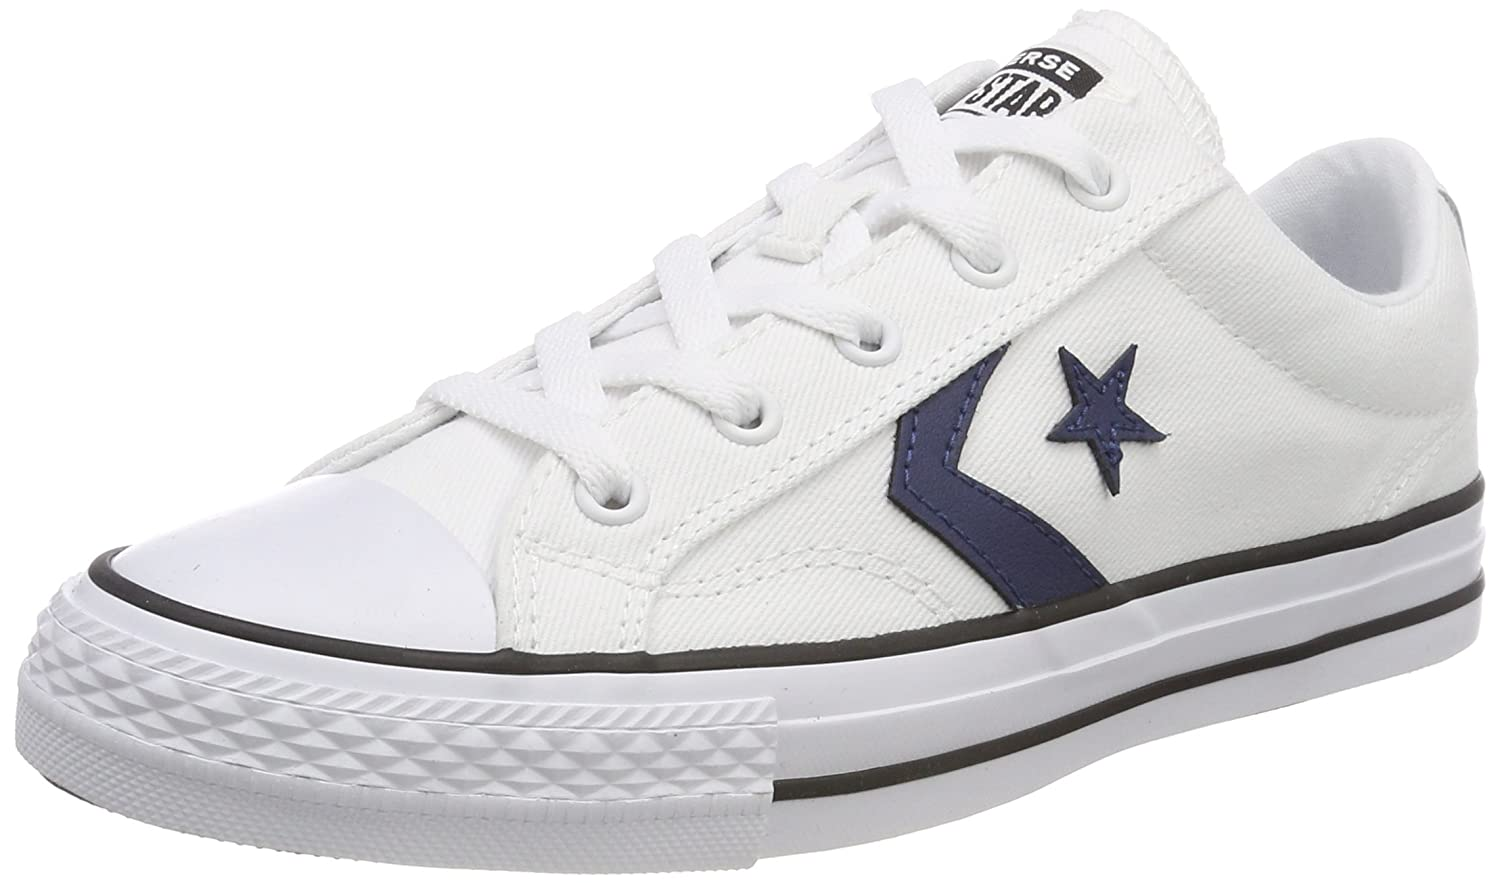 Converse Unisex-Erwachsene Star Player OX White/Navy/Black Sneaker  51.5 EU|Wei? (White/Navy/Black 102)